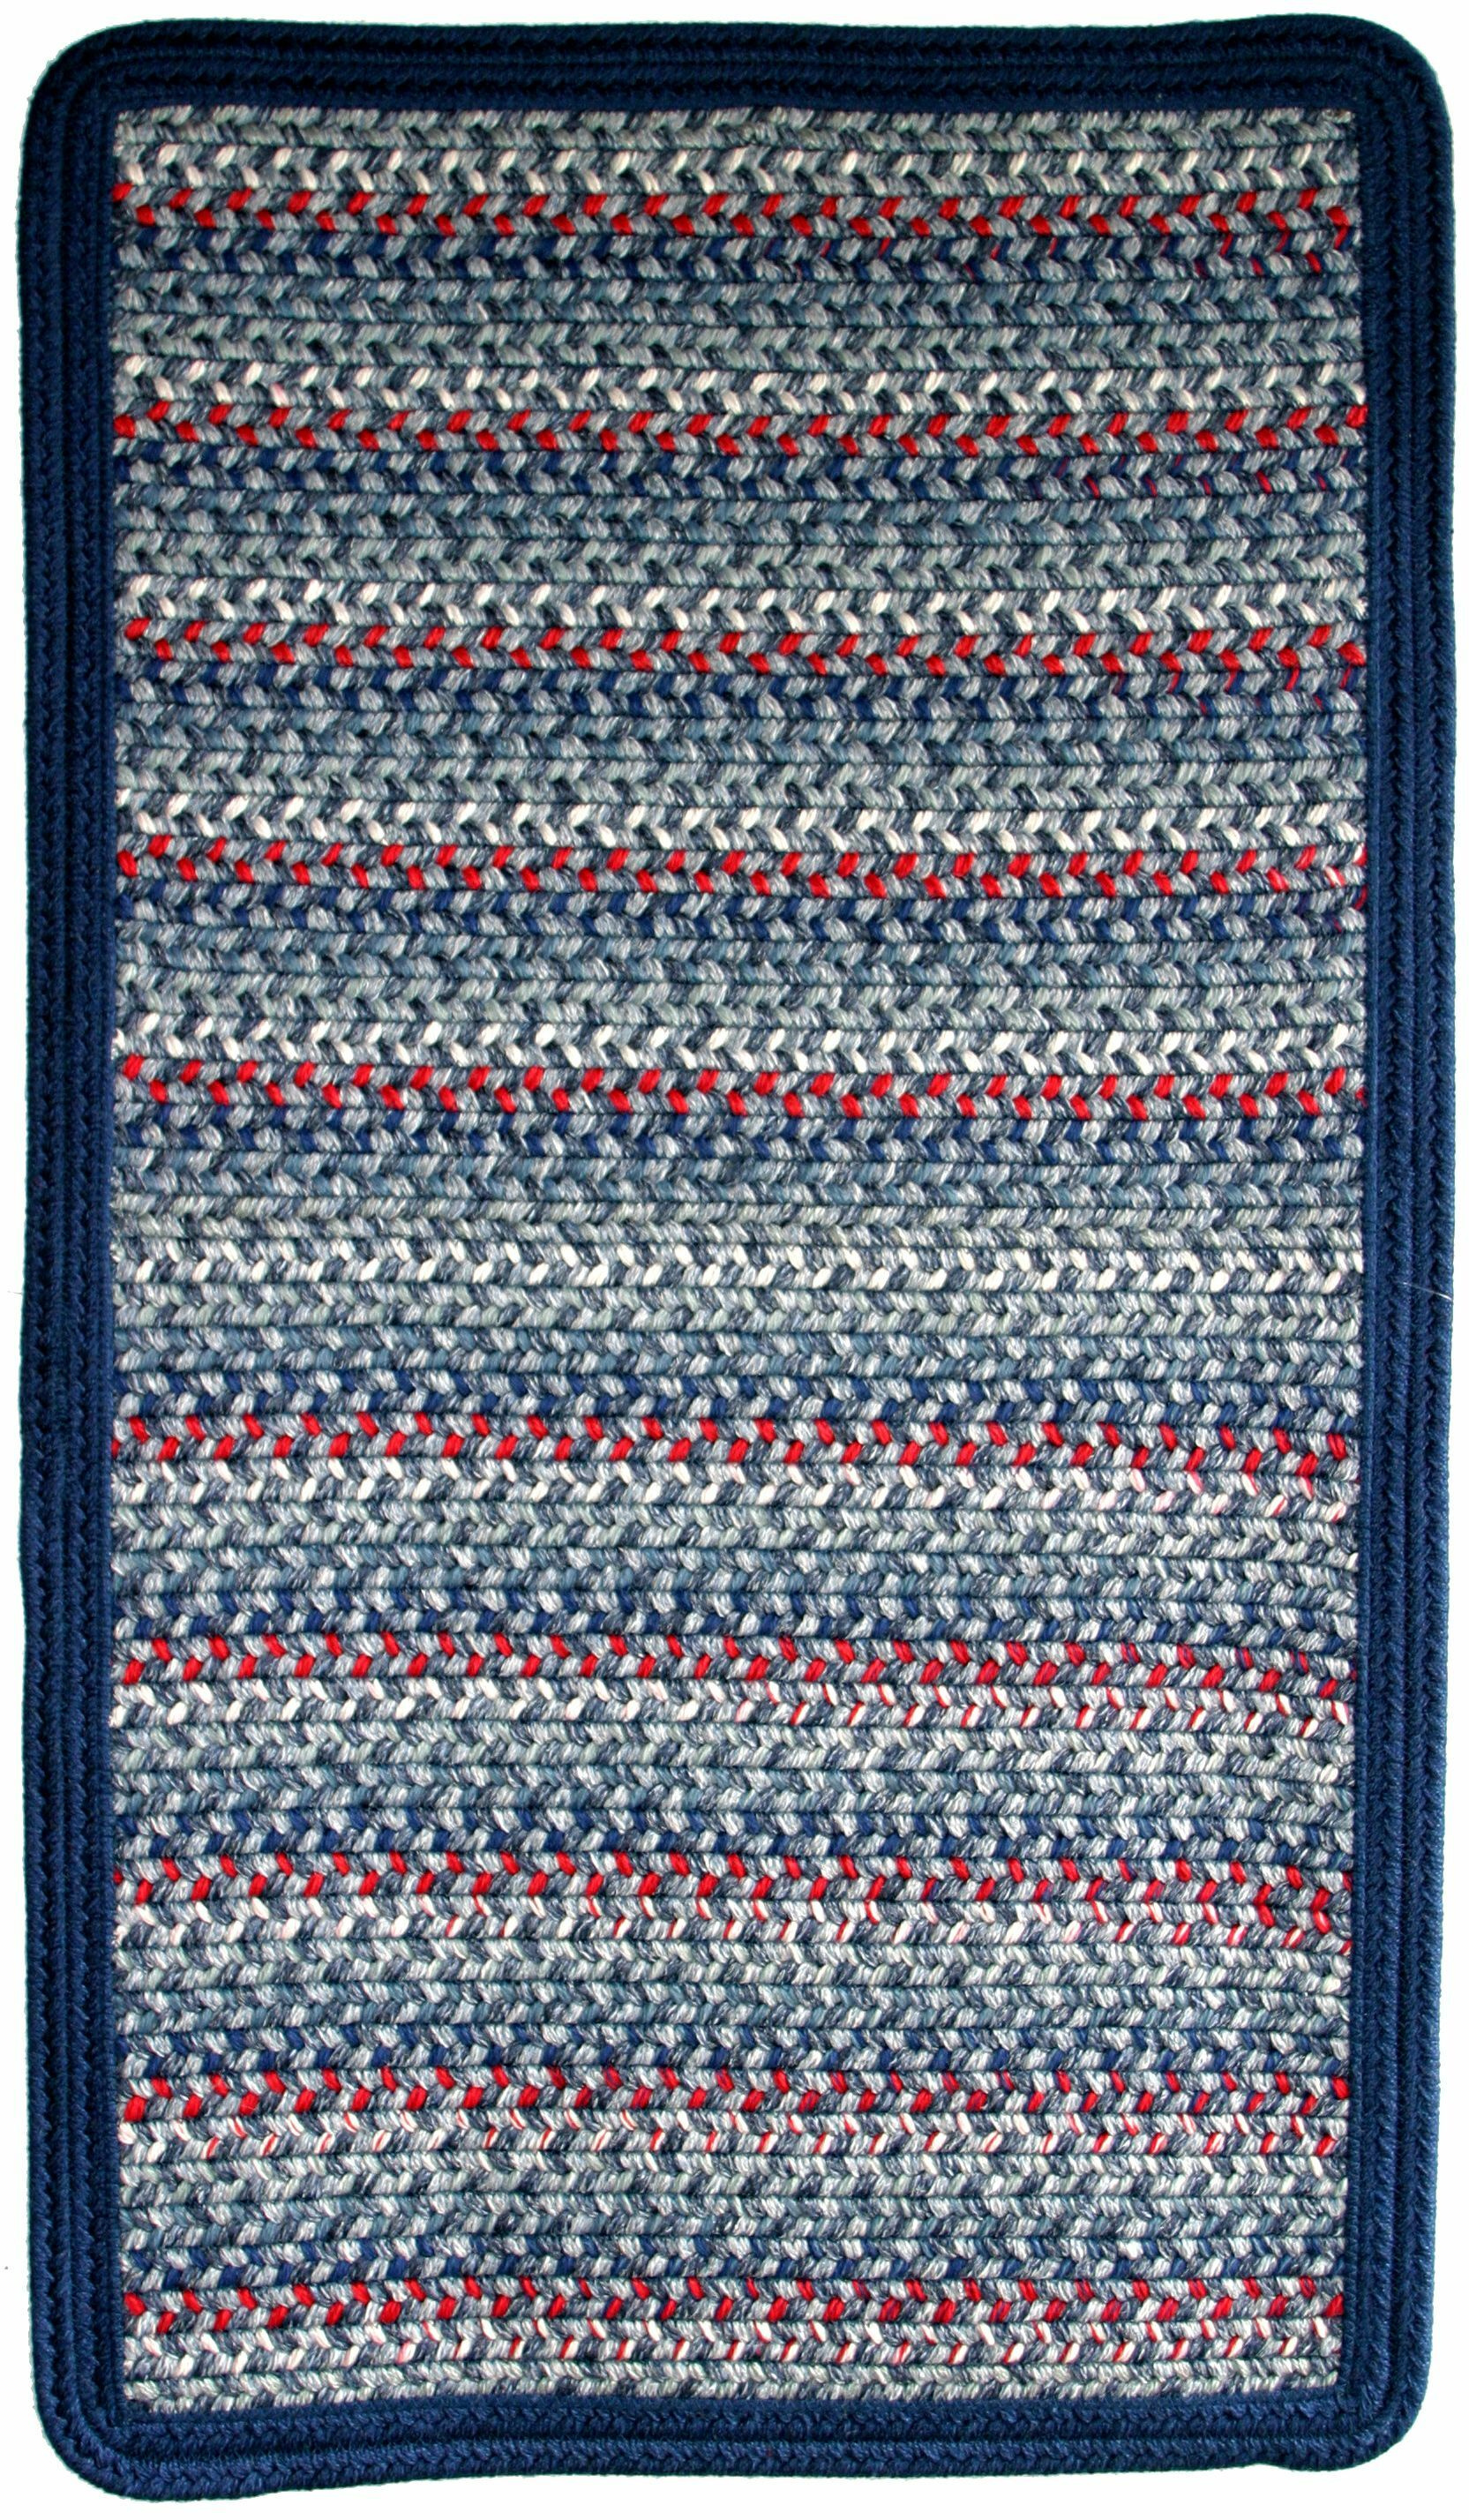 Pioneer Valley II Olympic Blue with Dark Blue Solids Multi Square Rug Rug Size: Square 10'